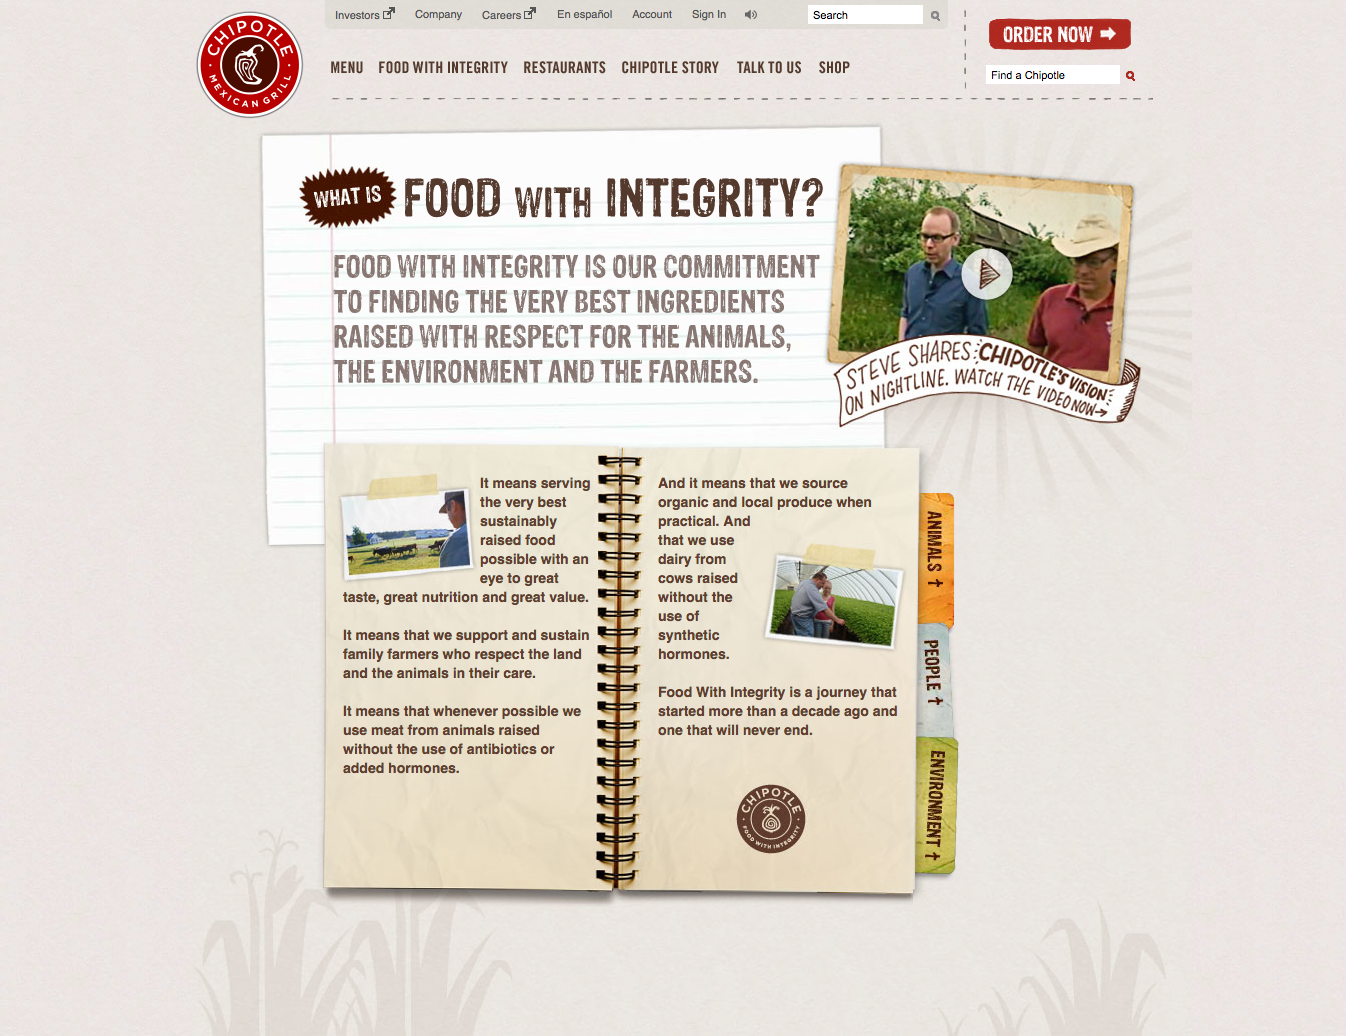 Chipotle's Food With Integrity page before I got my hands on it.